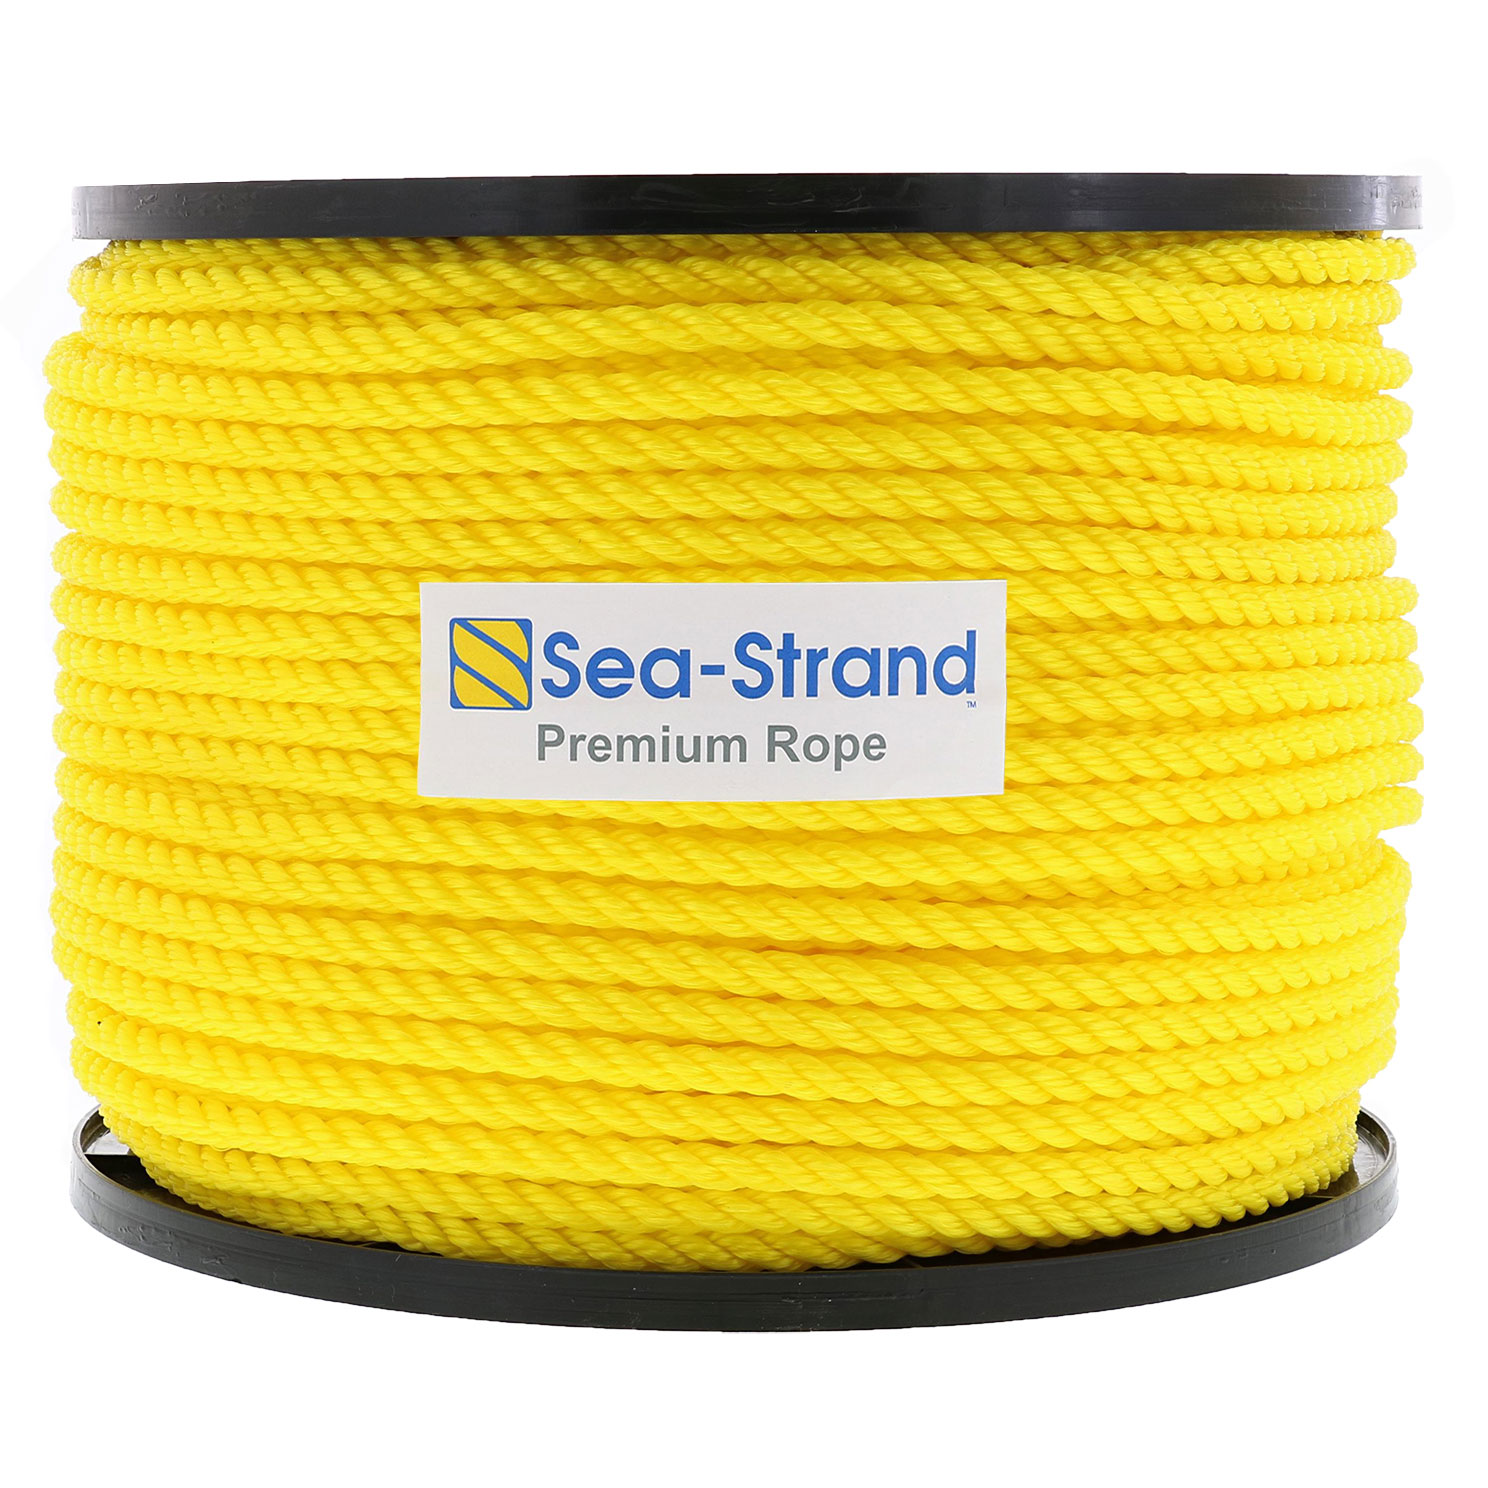 "1/4"" x 600' Reel, Yellow, 3-Strand Polypropylene Rope Image 1"